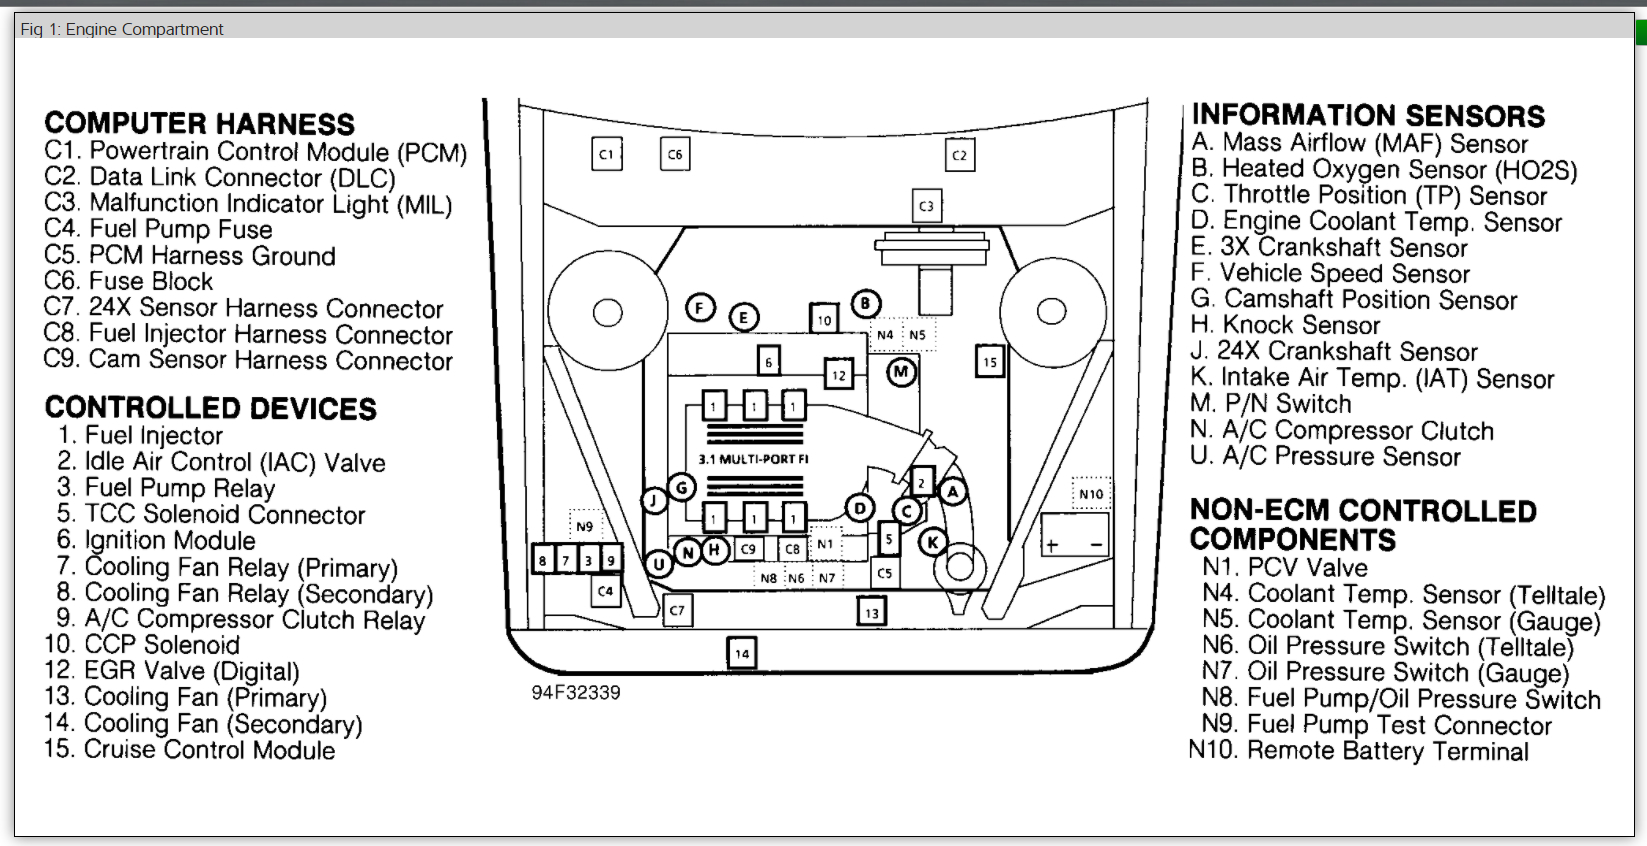 trailer plug wiring diagram also 1997 buick lesabre fuse box diagram wiring  diagram for ground 2011 malibu fuse box - lack.freeappsforkids.co.uk  wiring diagram - wires